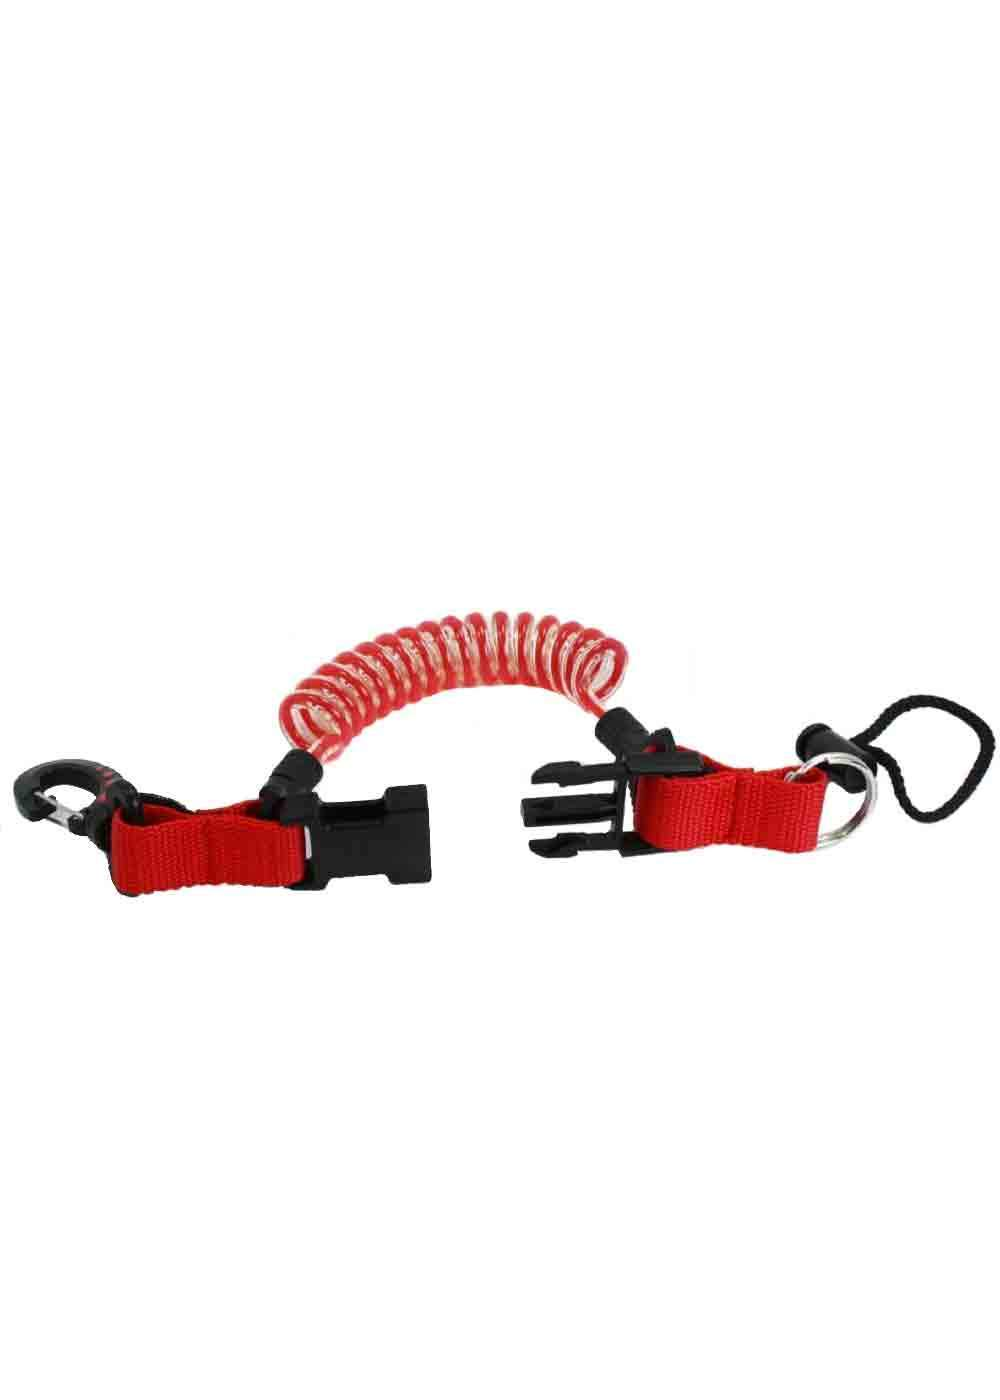 Problue Clip Shock Line Red. Deluxe Plastic Clip one end. Looped Cord other end.